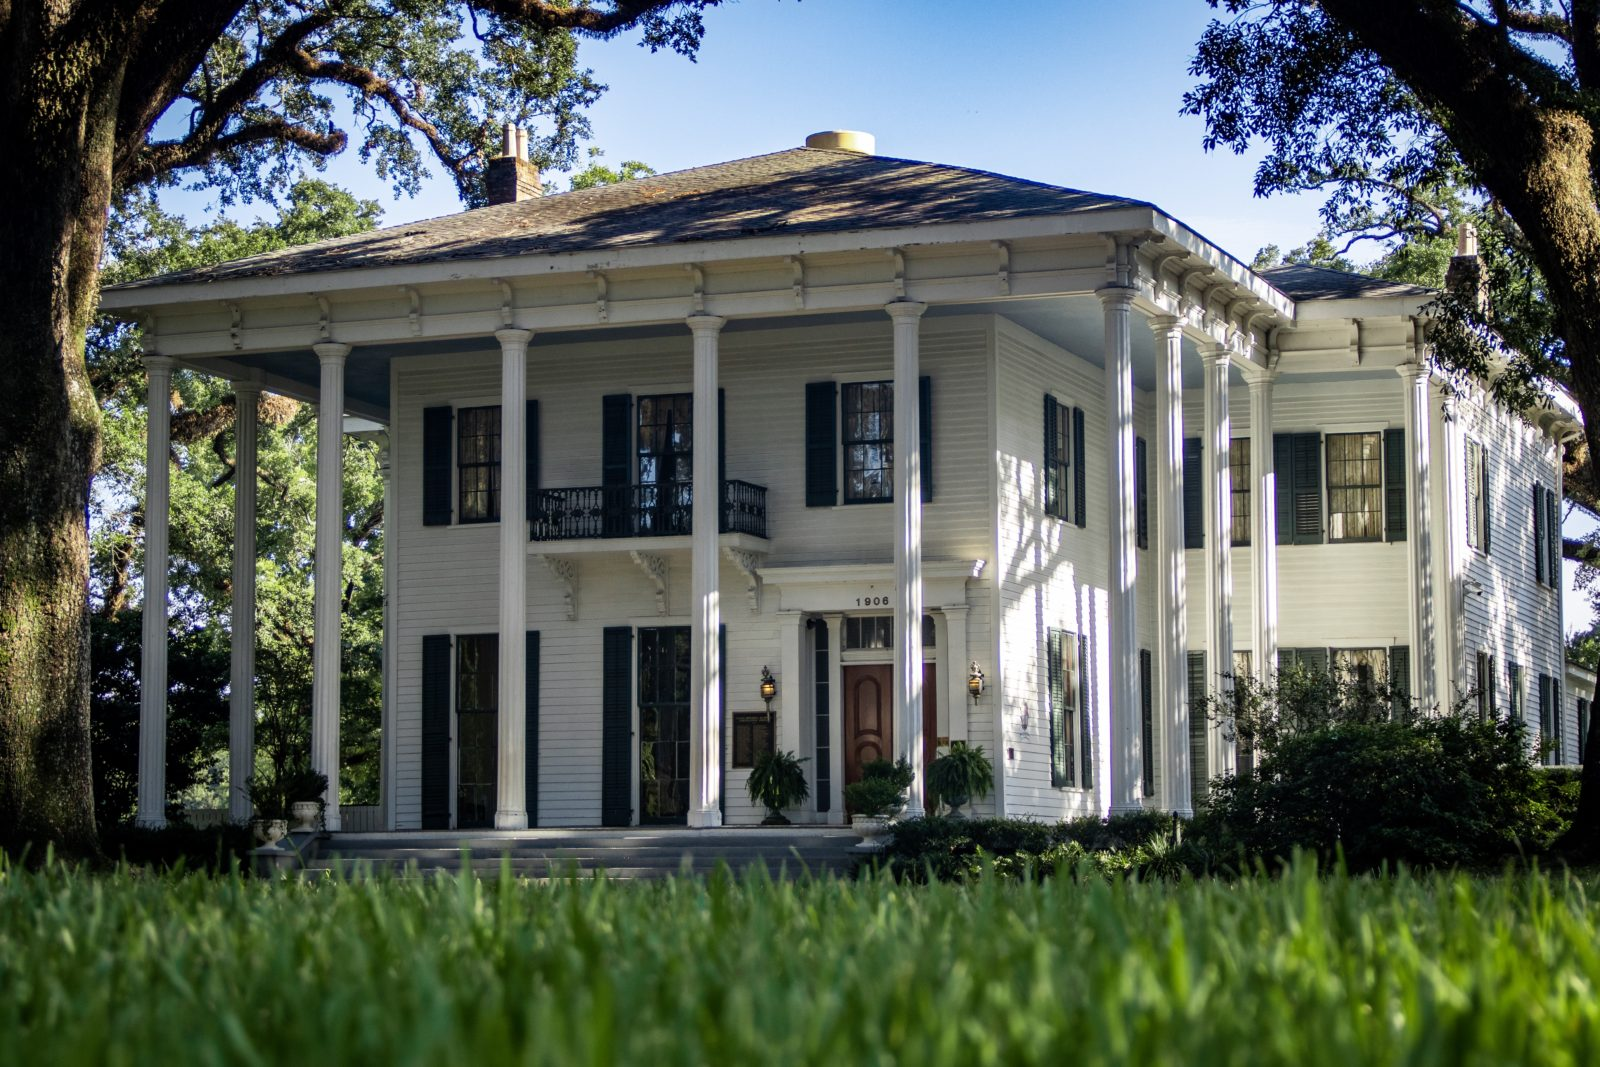 Low angle of Bragg-Mitchell Mansion in Mobile, AL